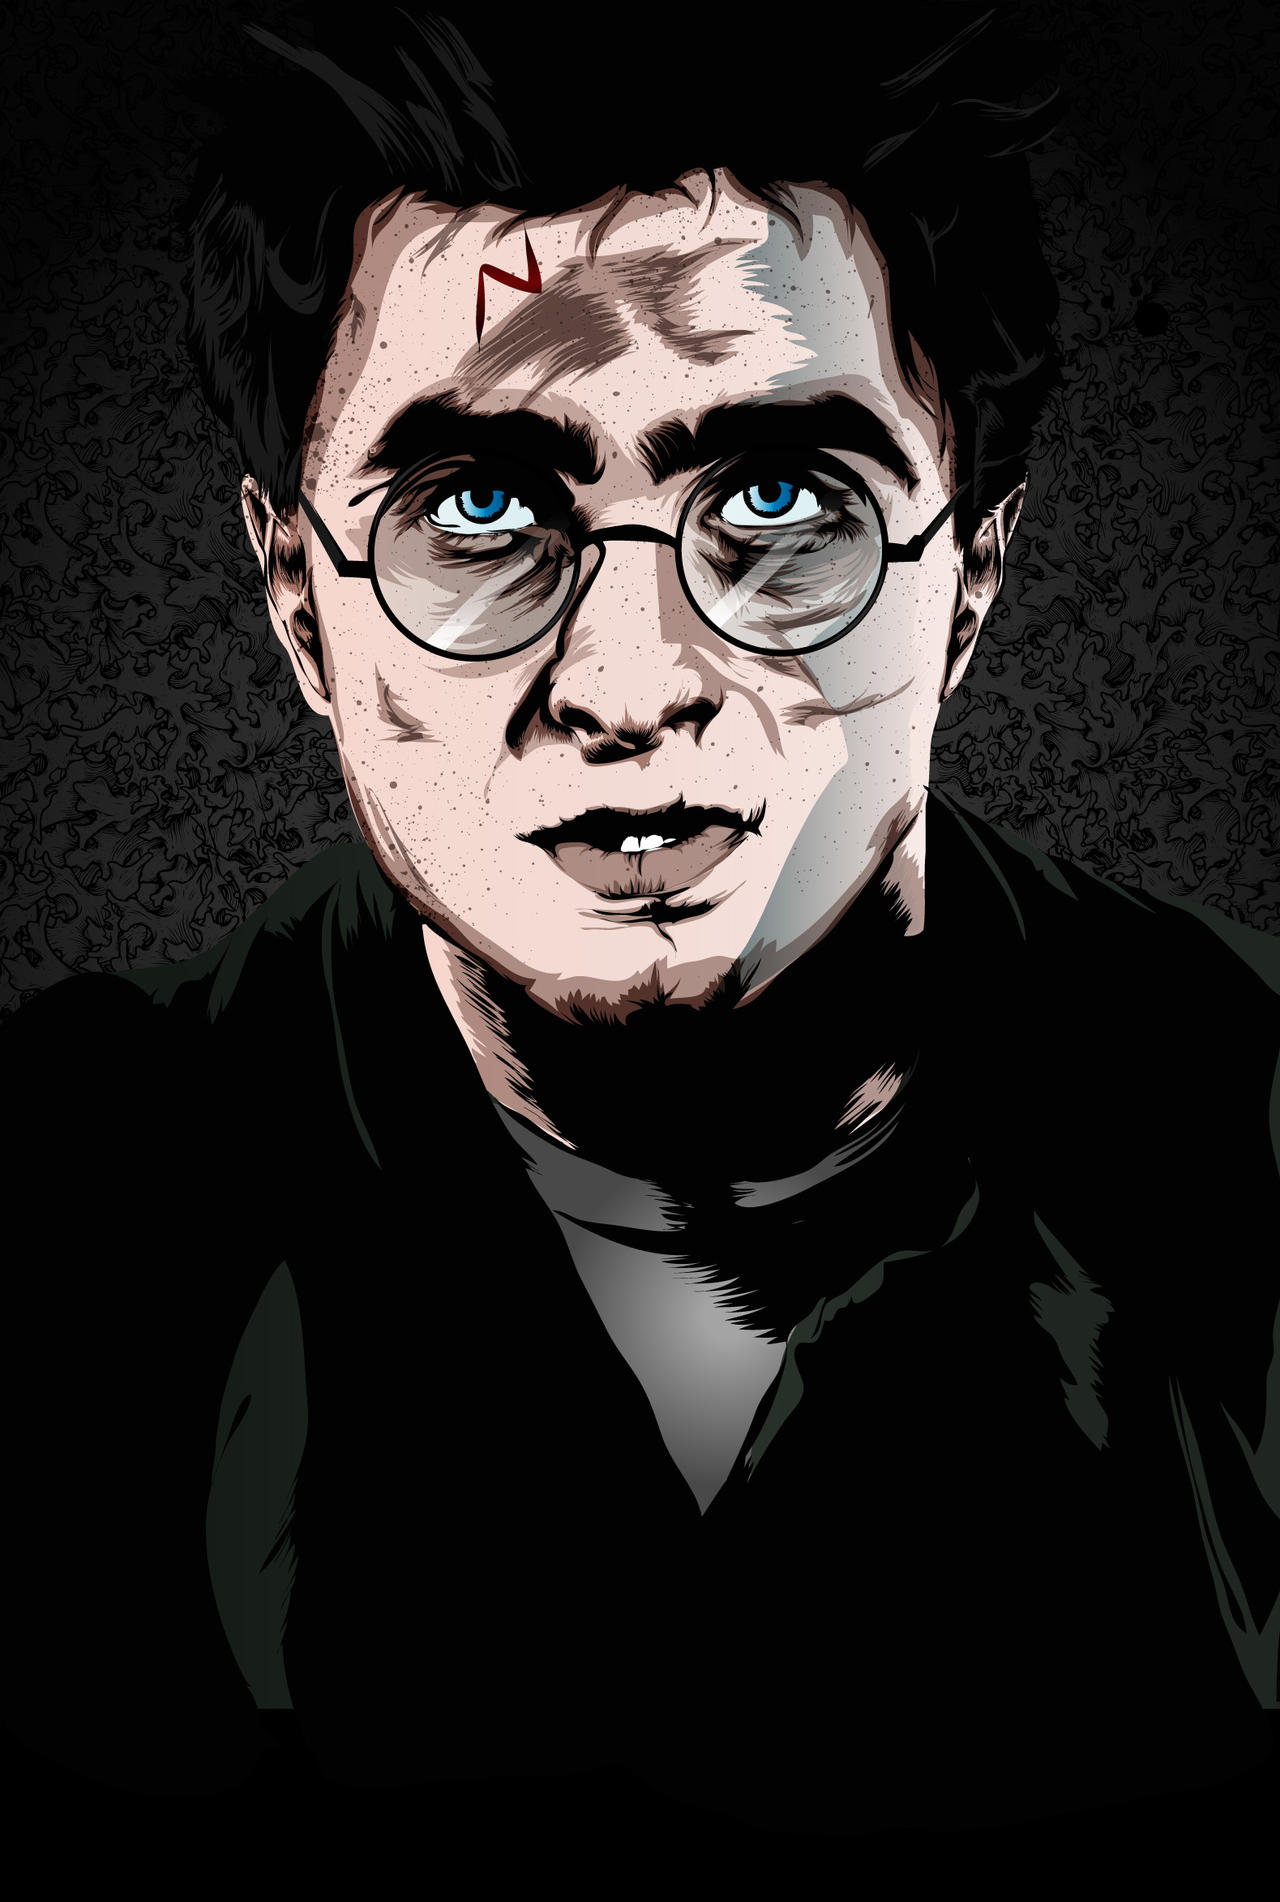 Harry Potter by artwarriors